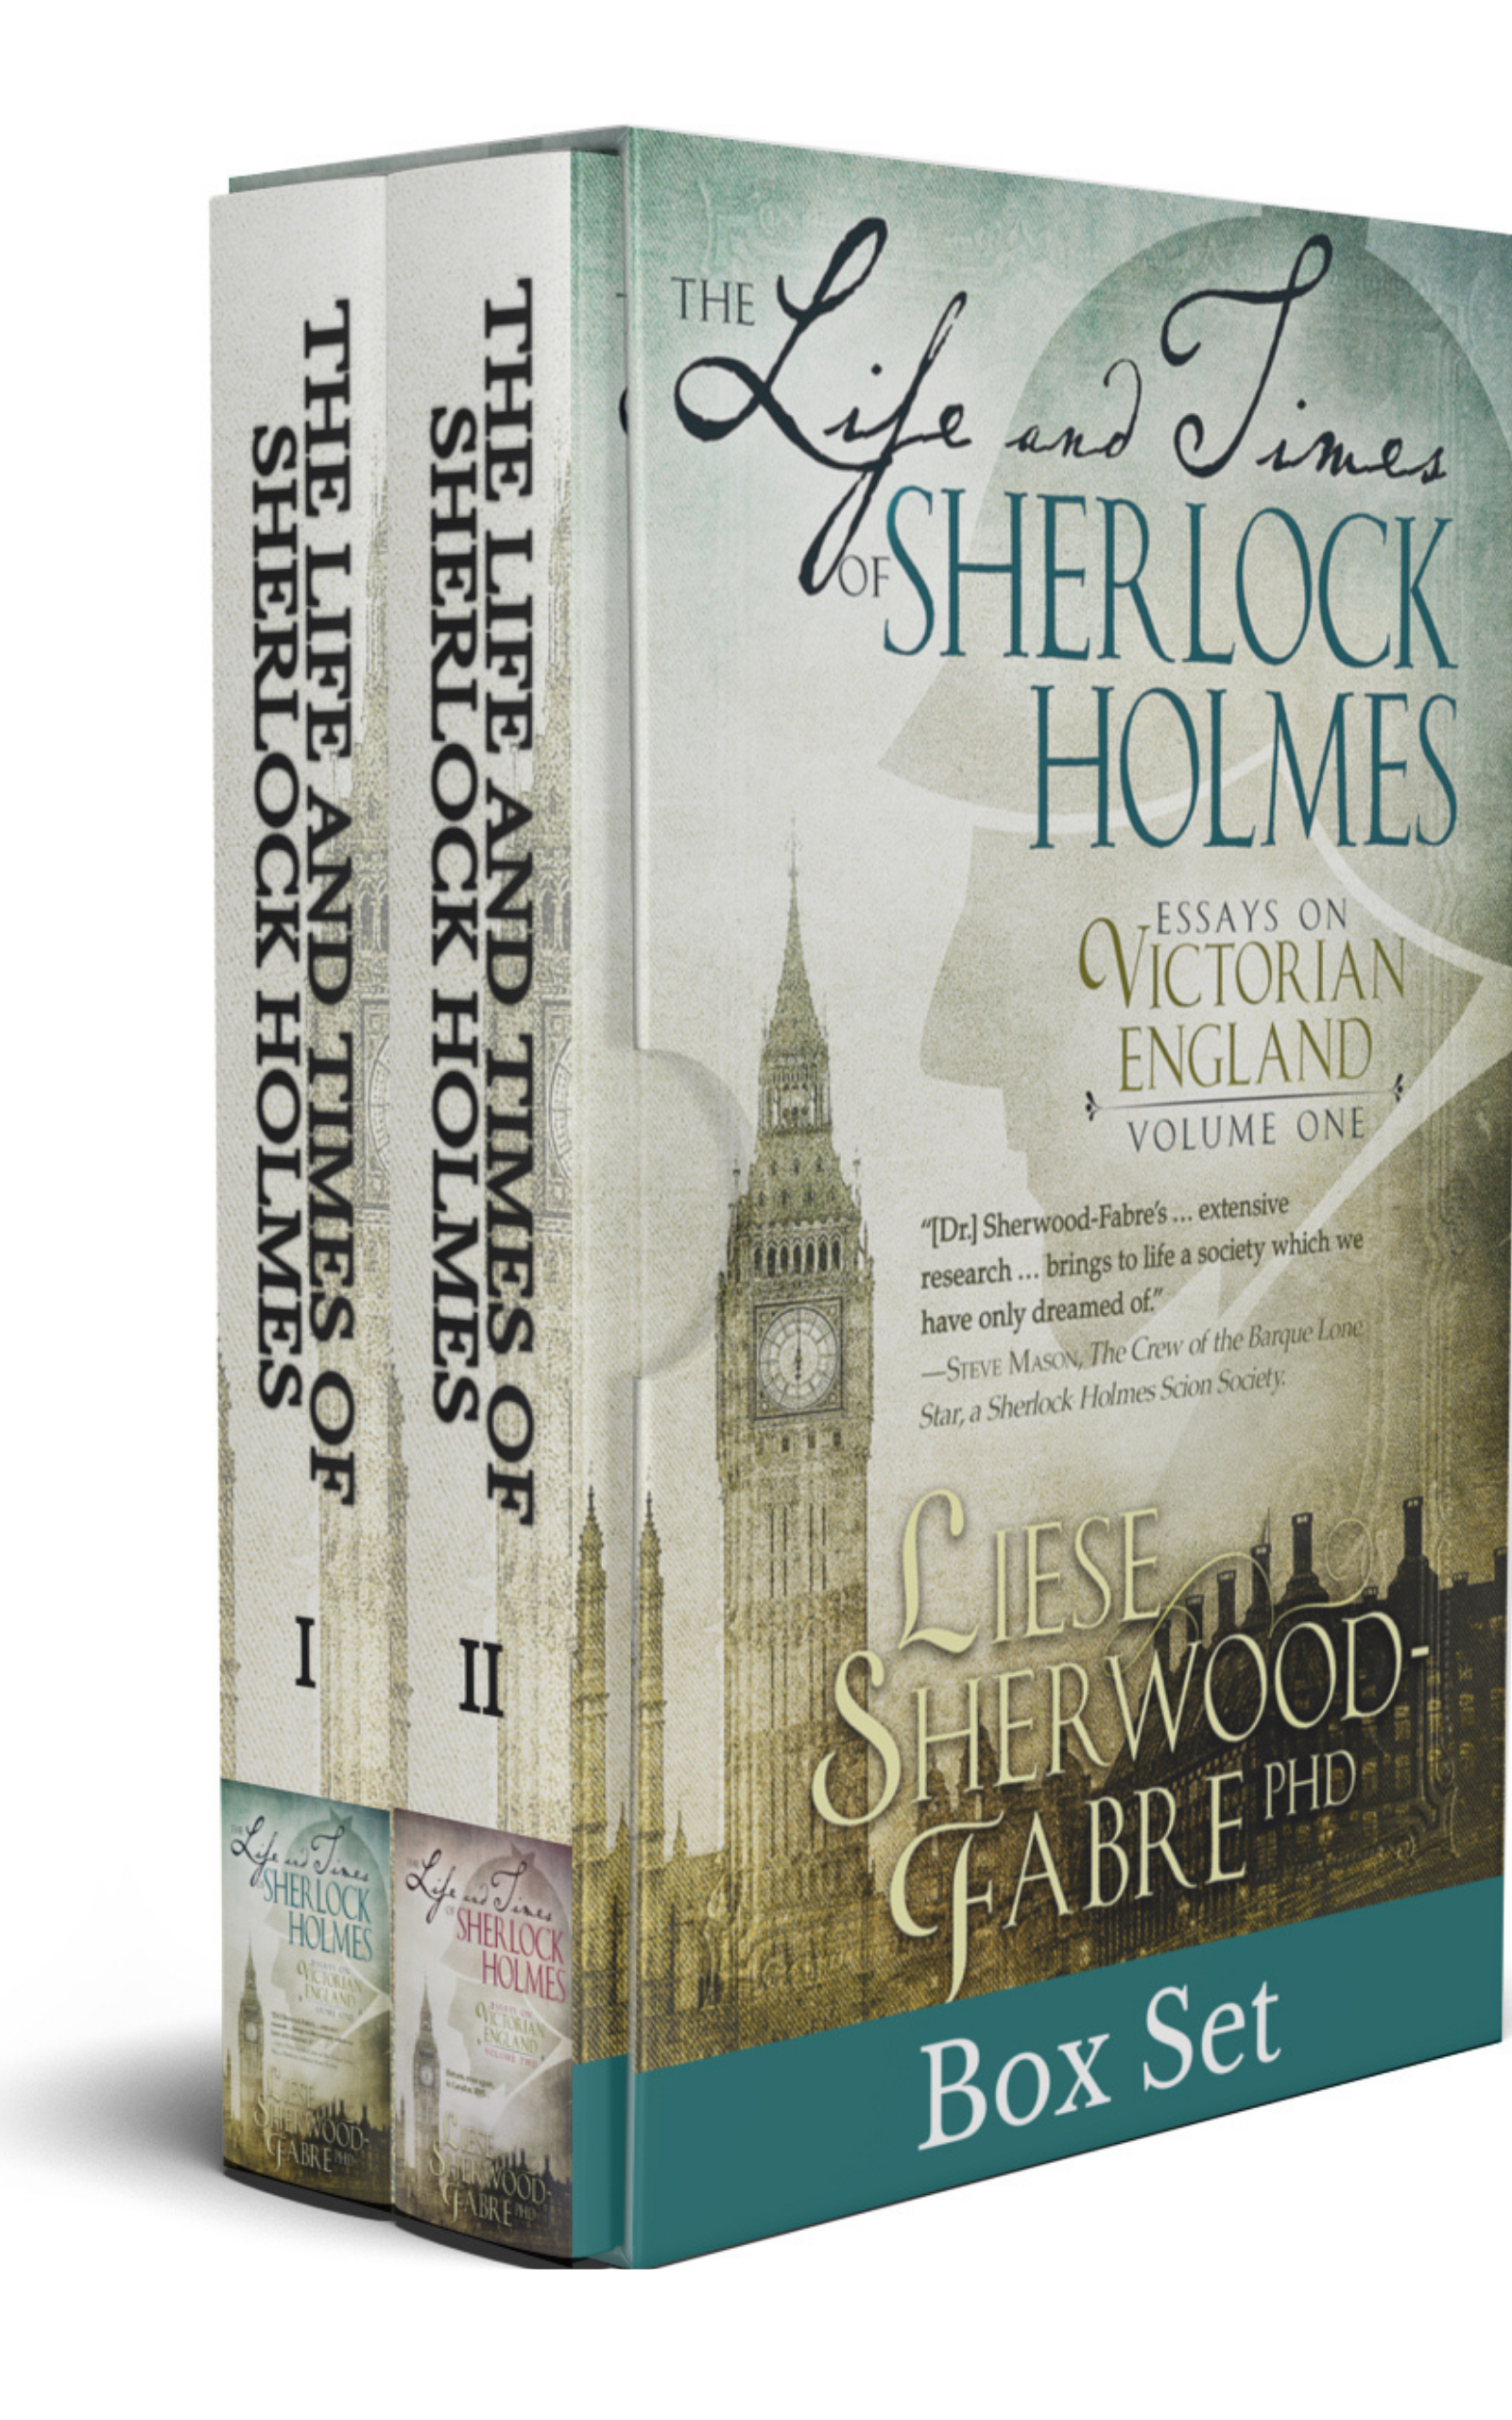 The Life and Times of Sherlock Holmes box set